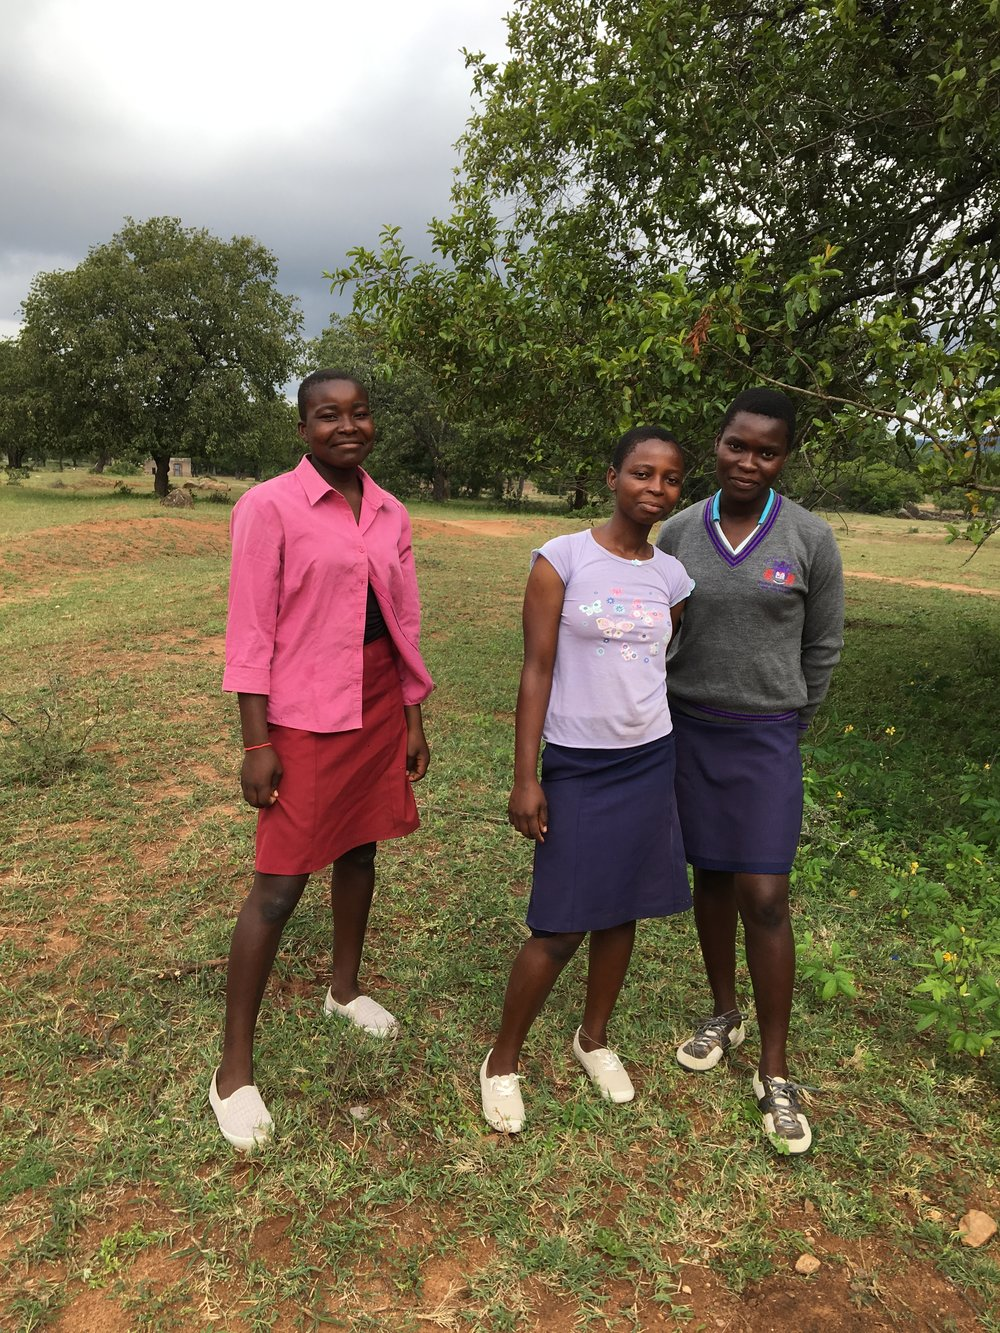 New shoes for Precious, Yvonne, and Tatenda